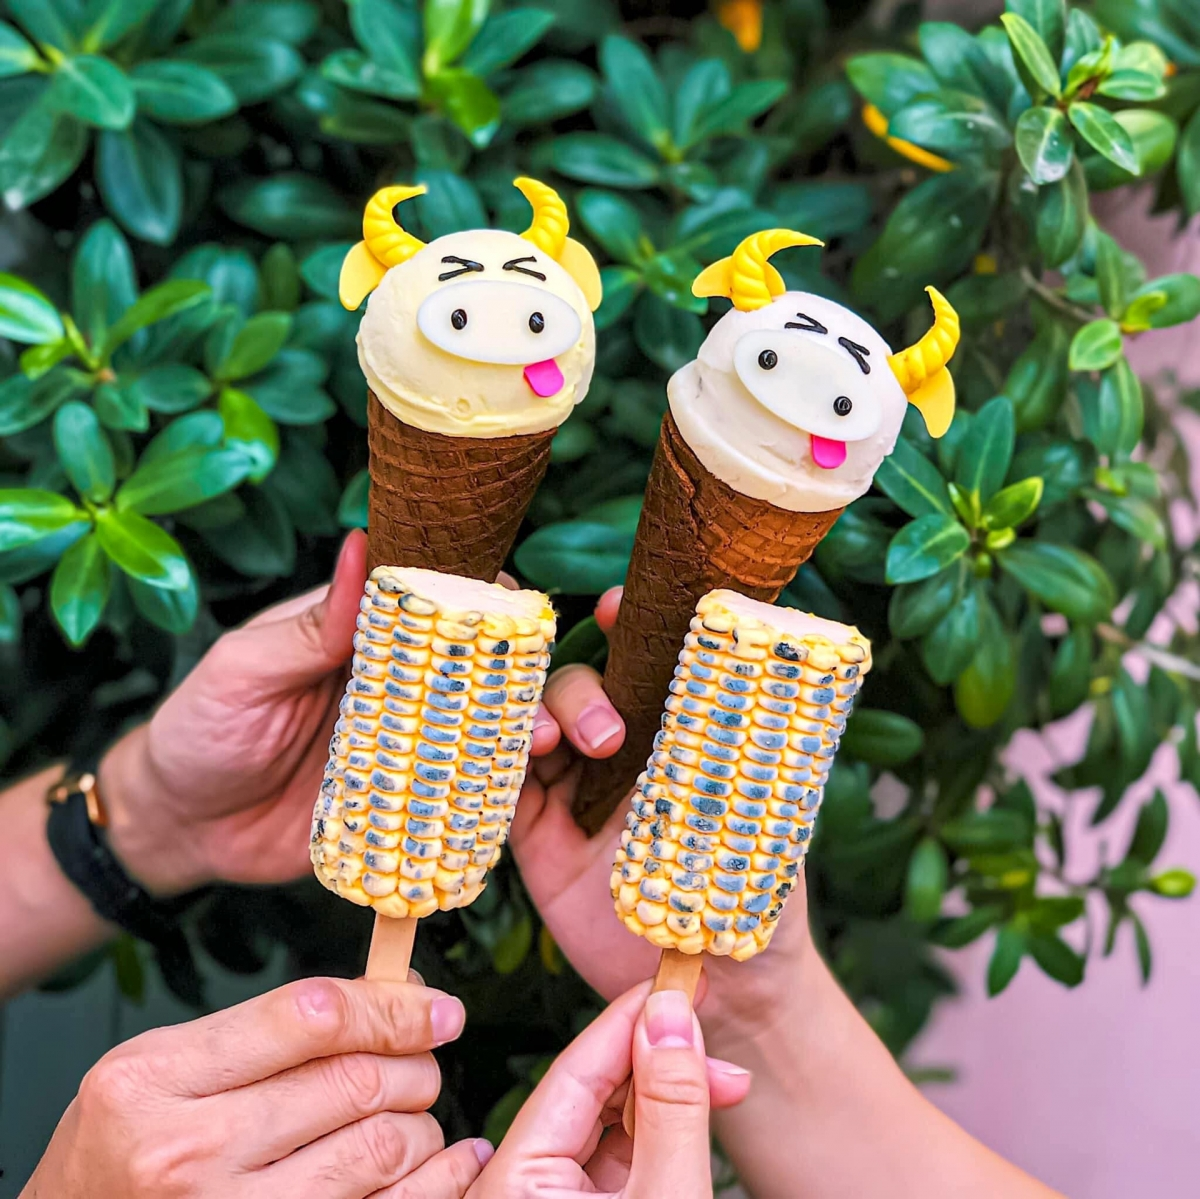 A variety of flavours are on offer to satisfy the demands of both children and adults, with a single ice cream costing VND55,000. (Photo: Roseicesaigon)